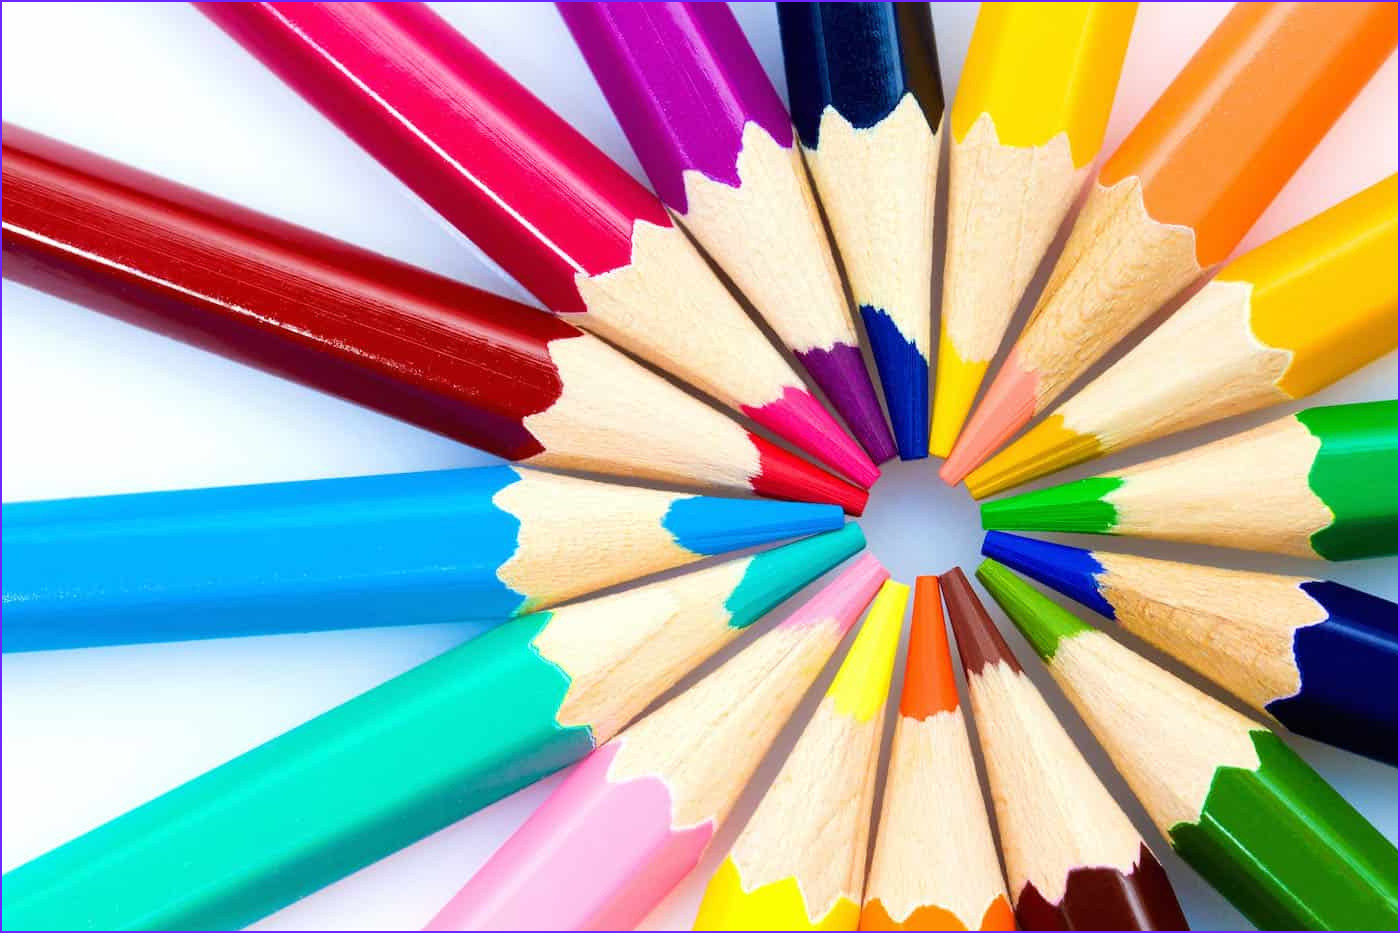 Coloring Book Pencils Luxury Images Best Colored Pencils for Coloring Books Diycandy